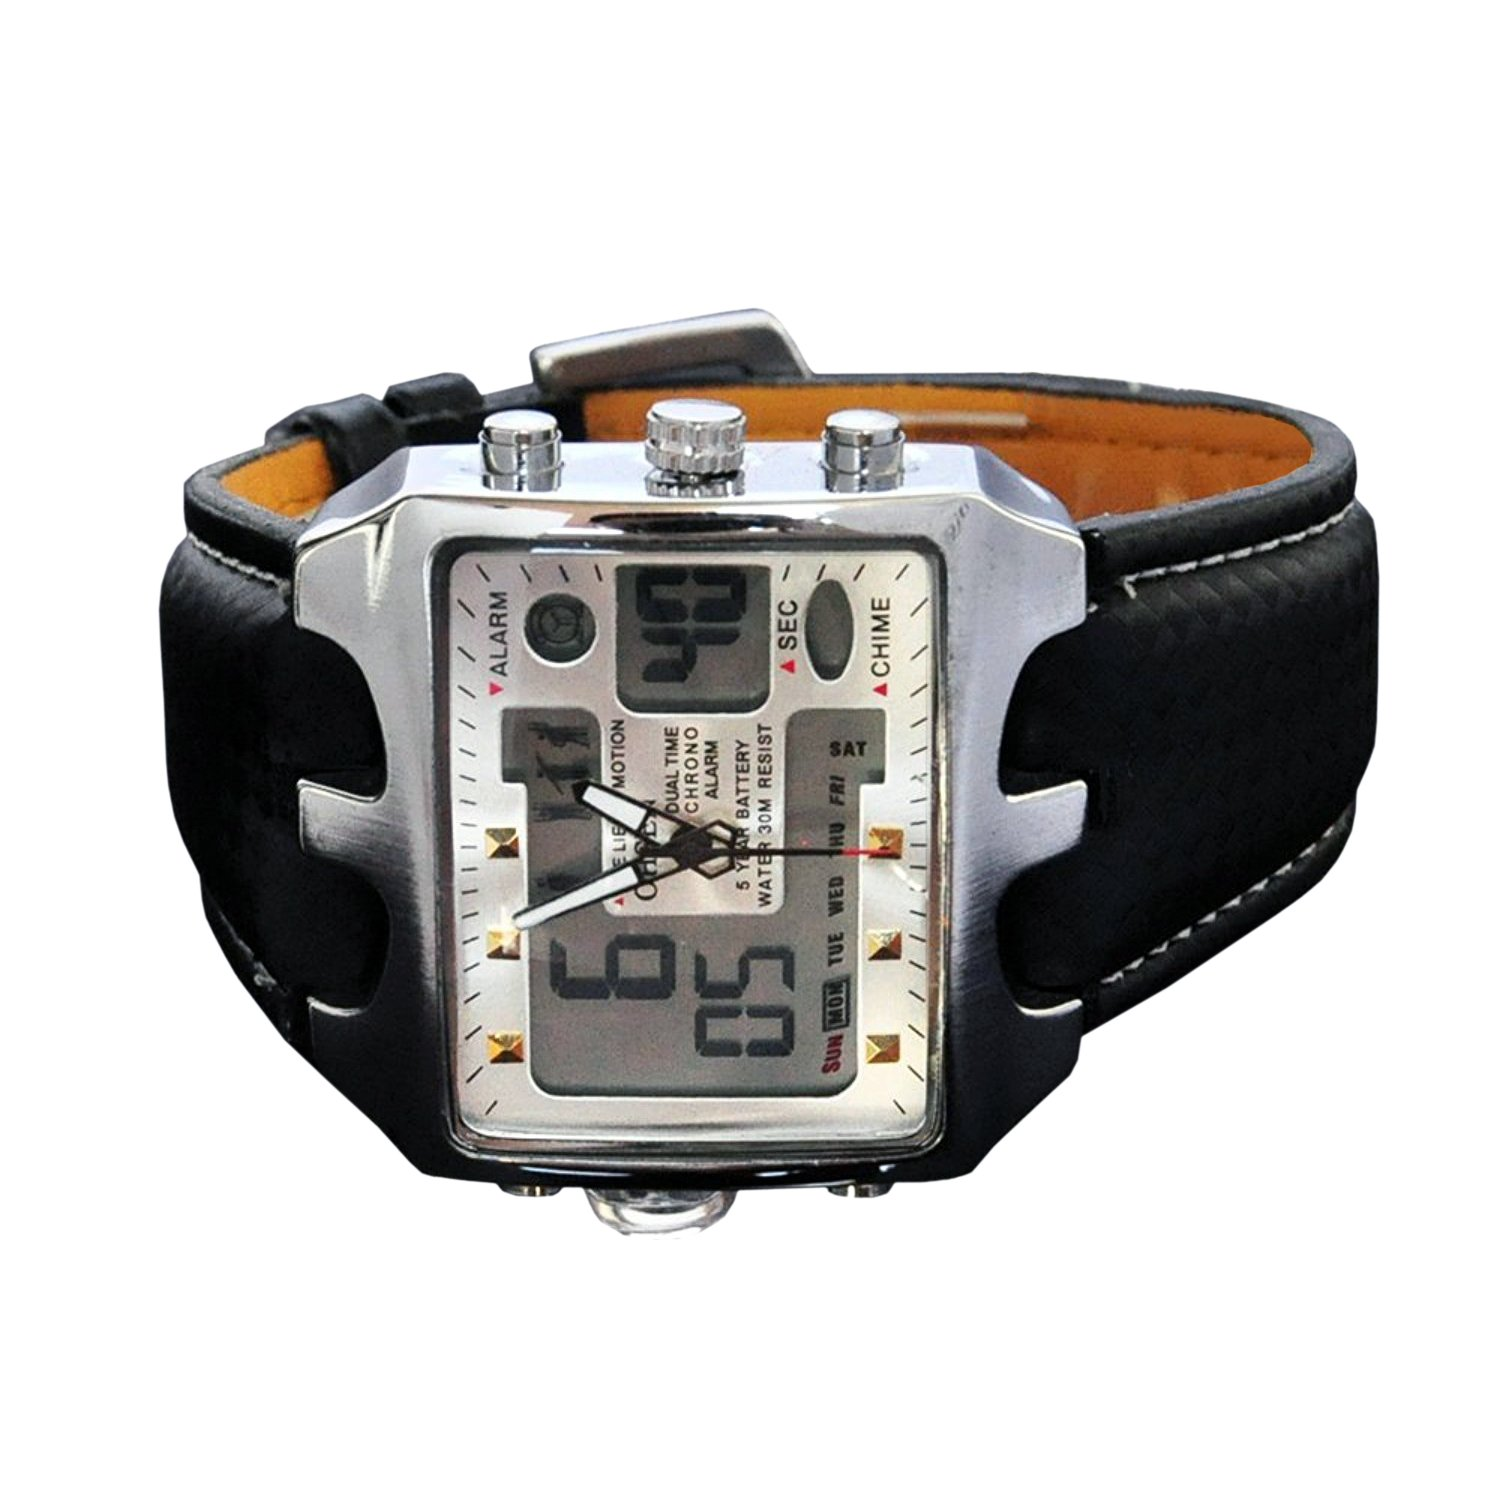 ... Big Square Face LED Dual Time Analog Digital Light Up Dial Stopwatch Leather Band Relojes Deportivos de Hombre Cronometros Wacht Hombre OH-112: Watches